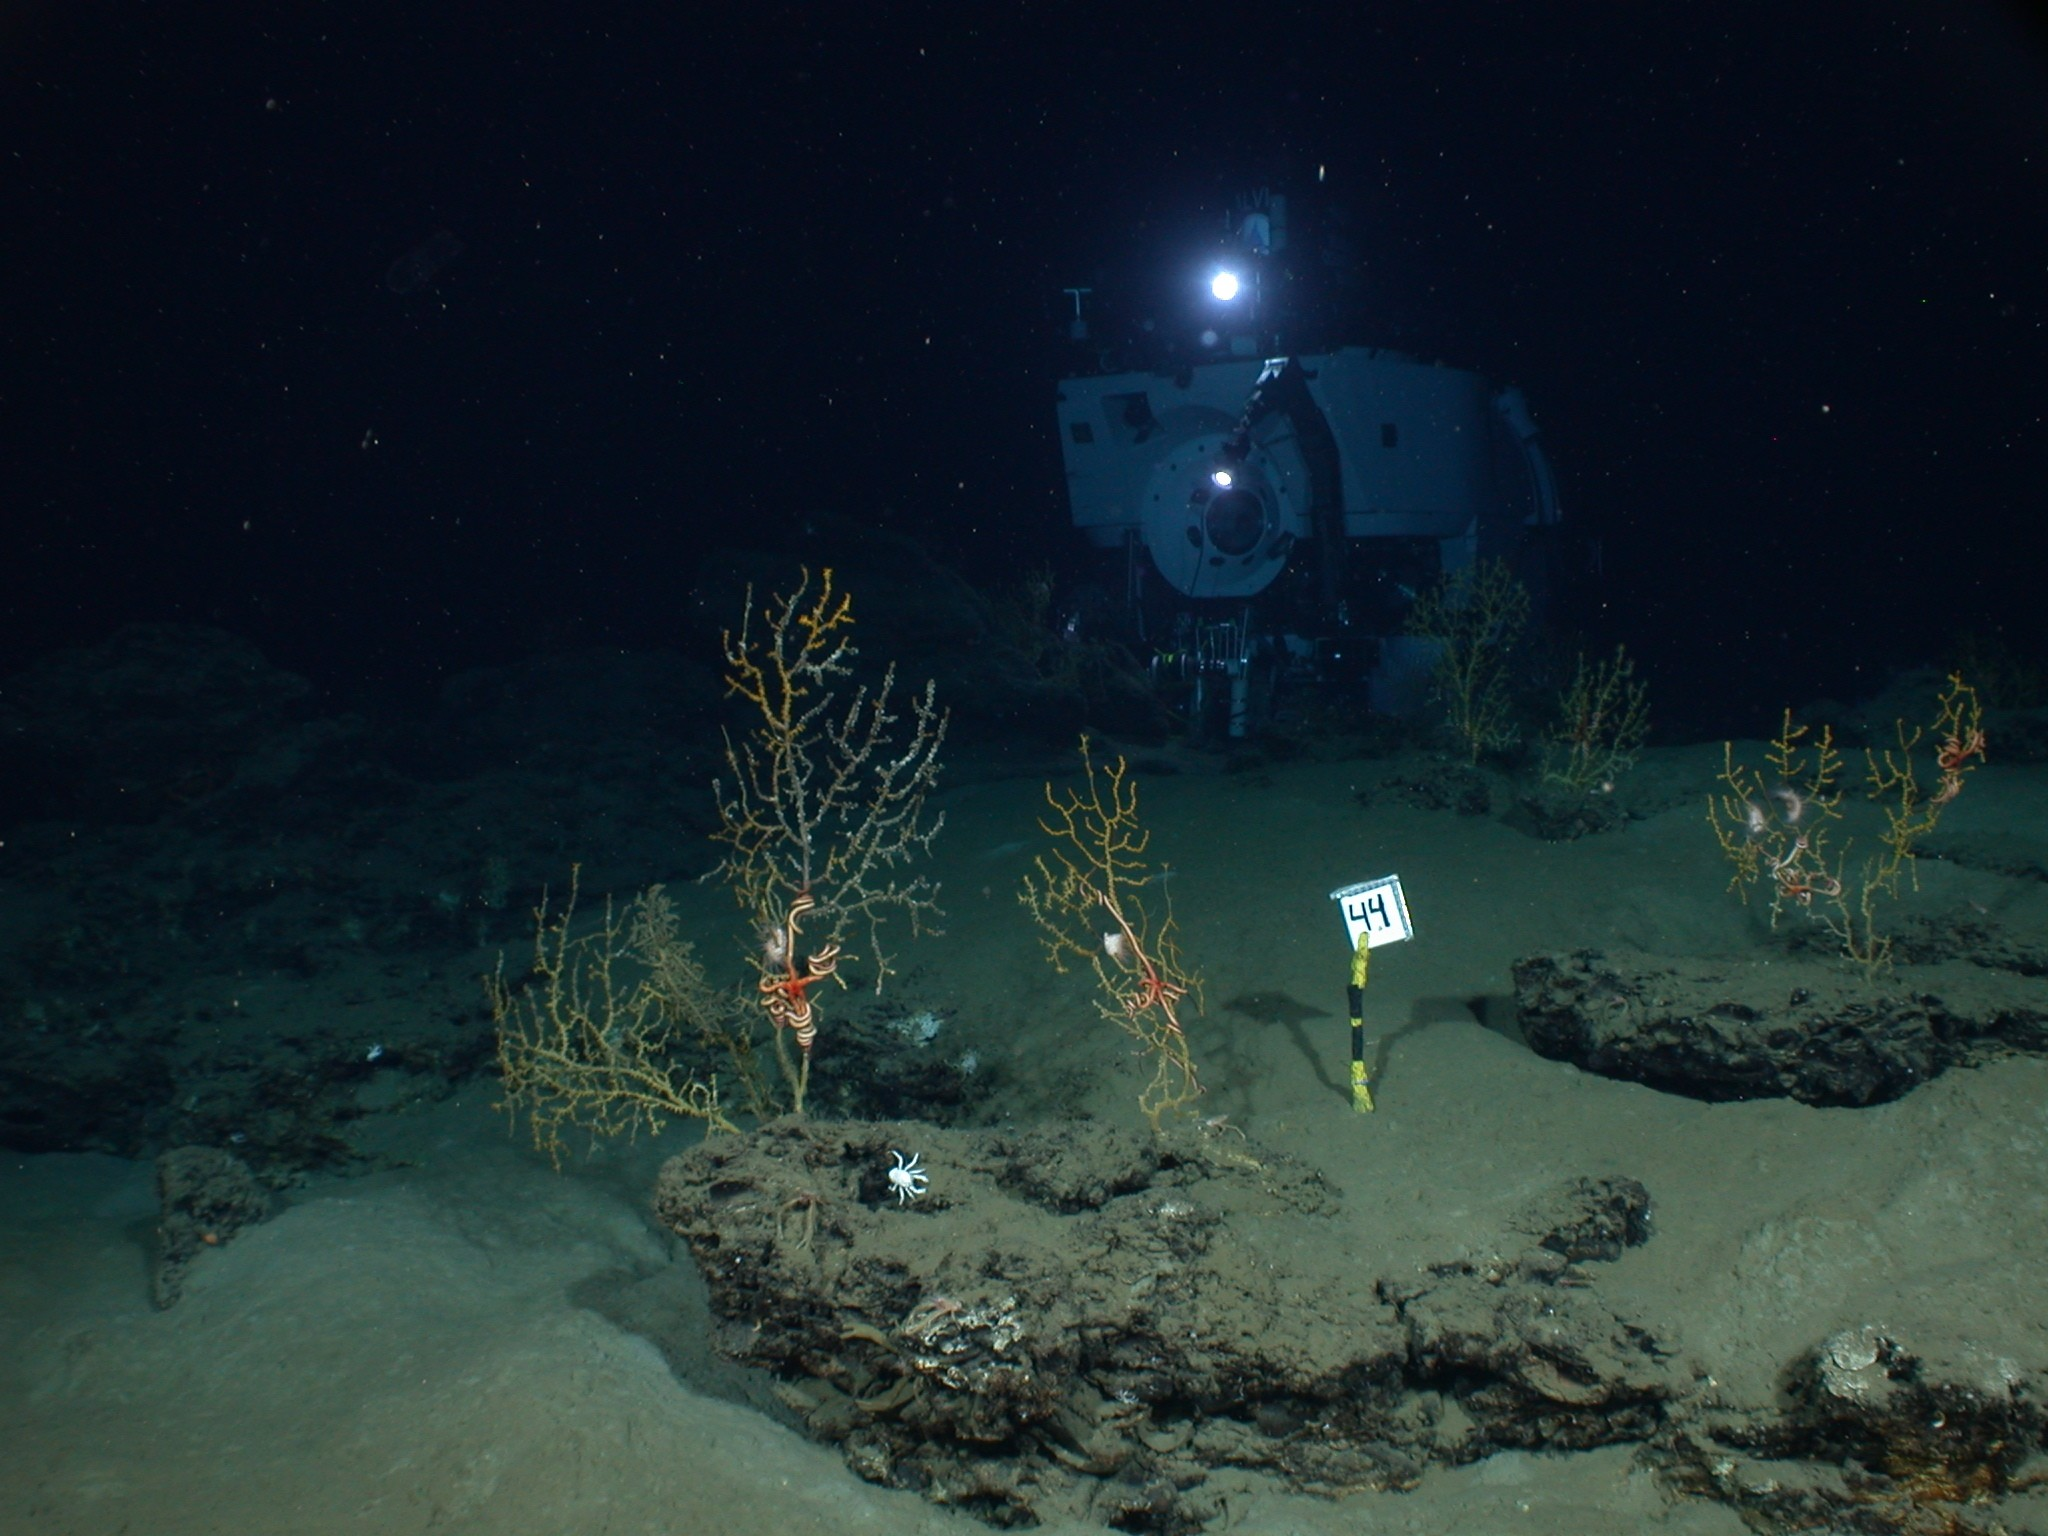 Deep submergence vehicle, Alvin, shown underwater, with sea creatures in  the foreground.